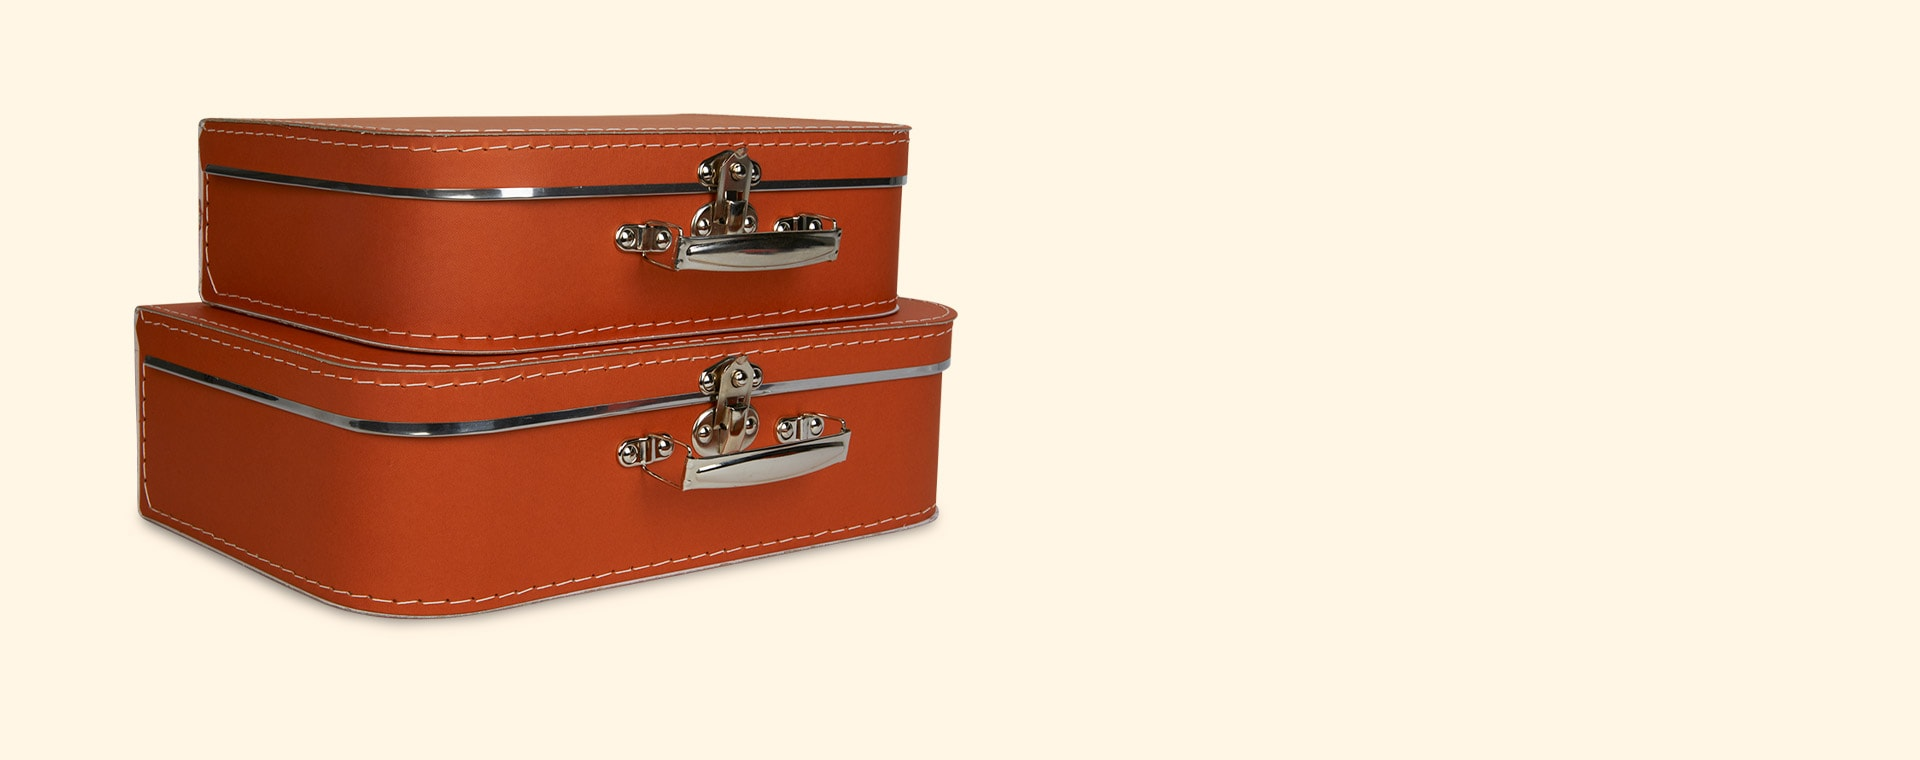 Rust Kid's Concept Paper Suitcase 2 Pack Set